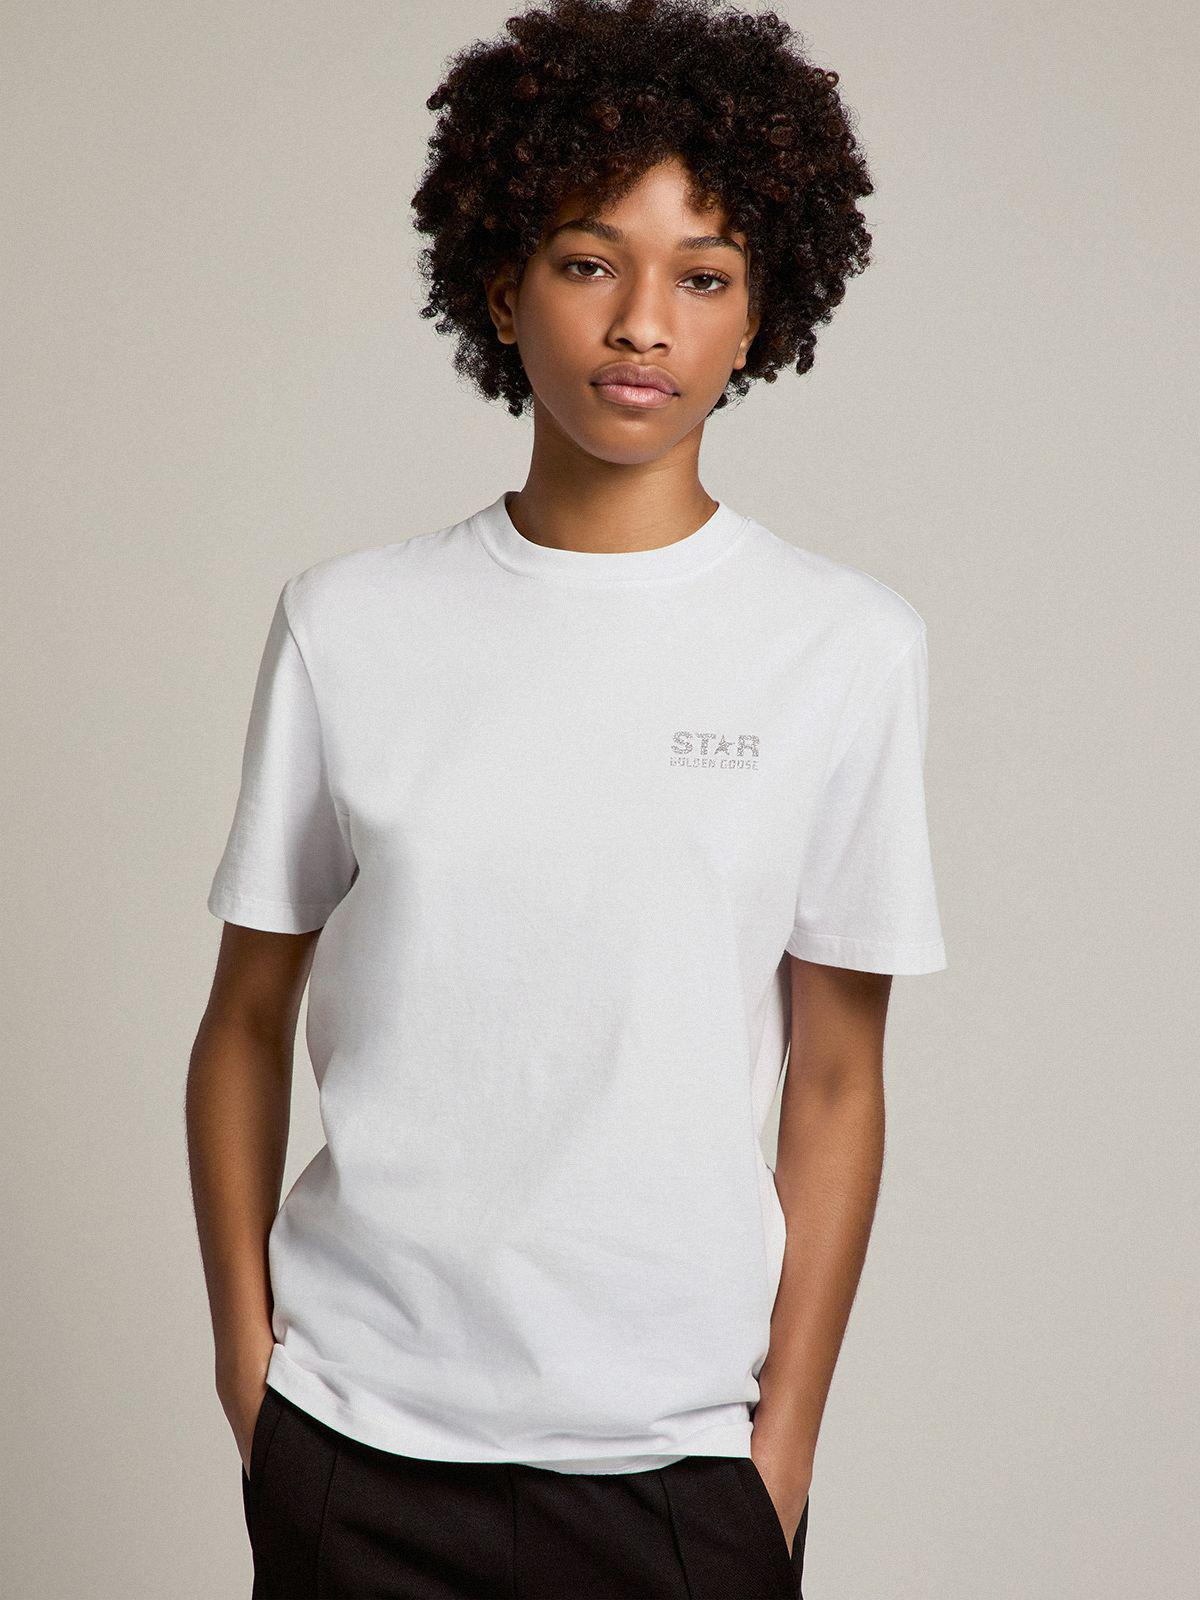 White Star Collection T-shirt with logo and star in silver glitter 1